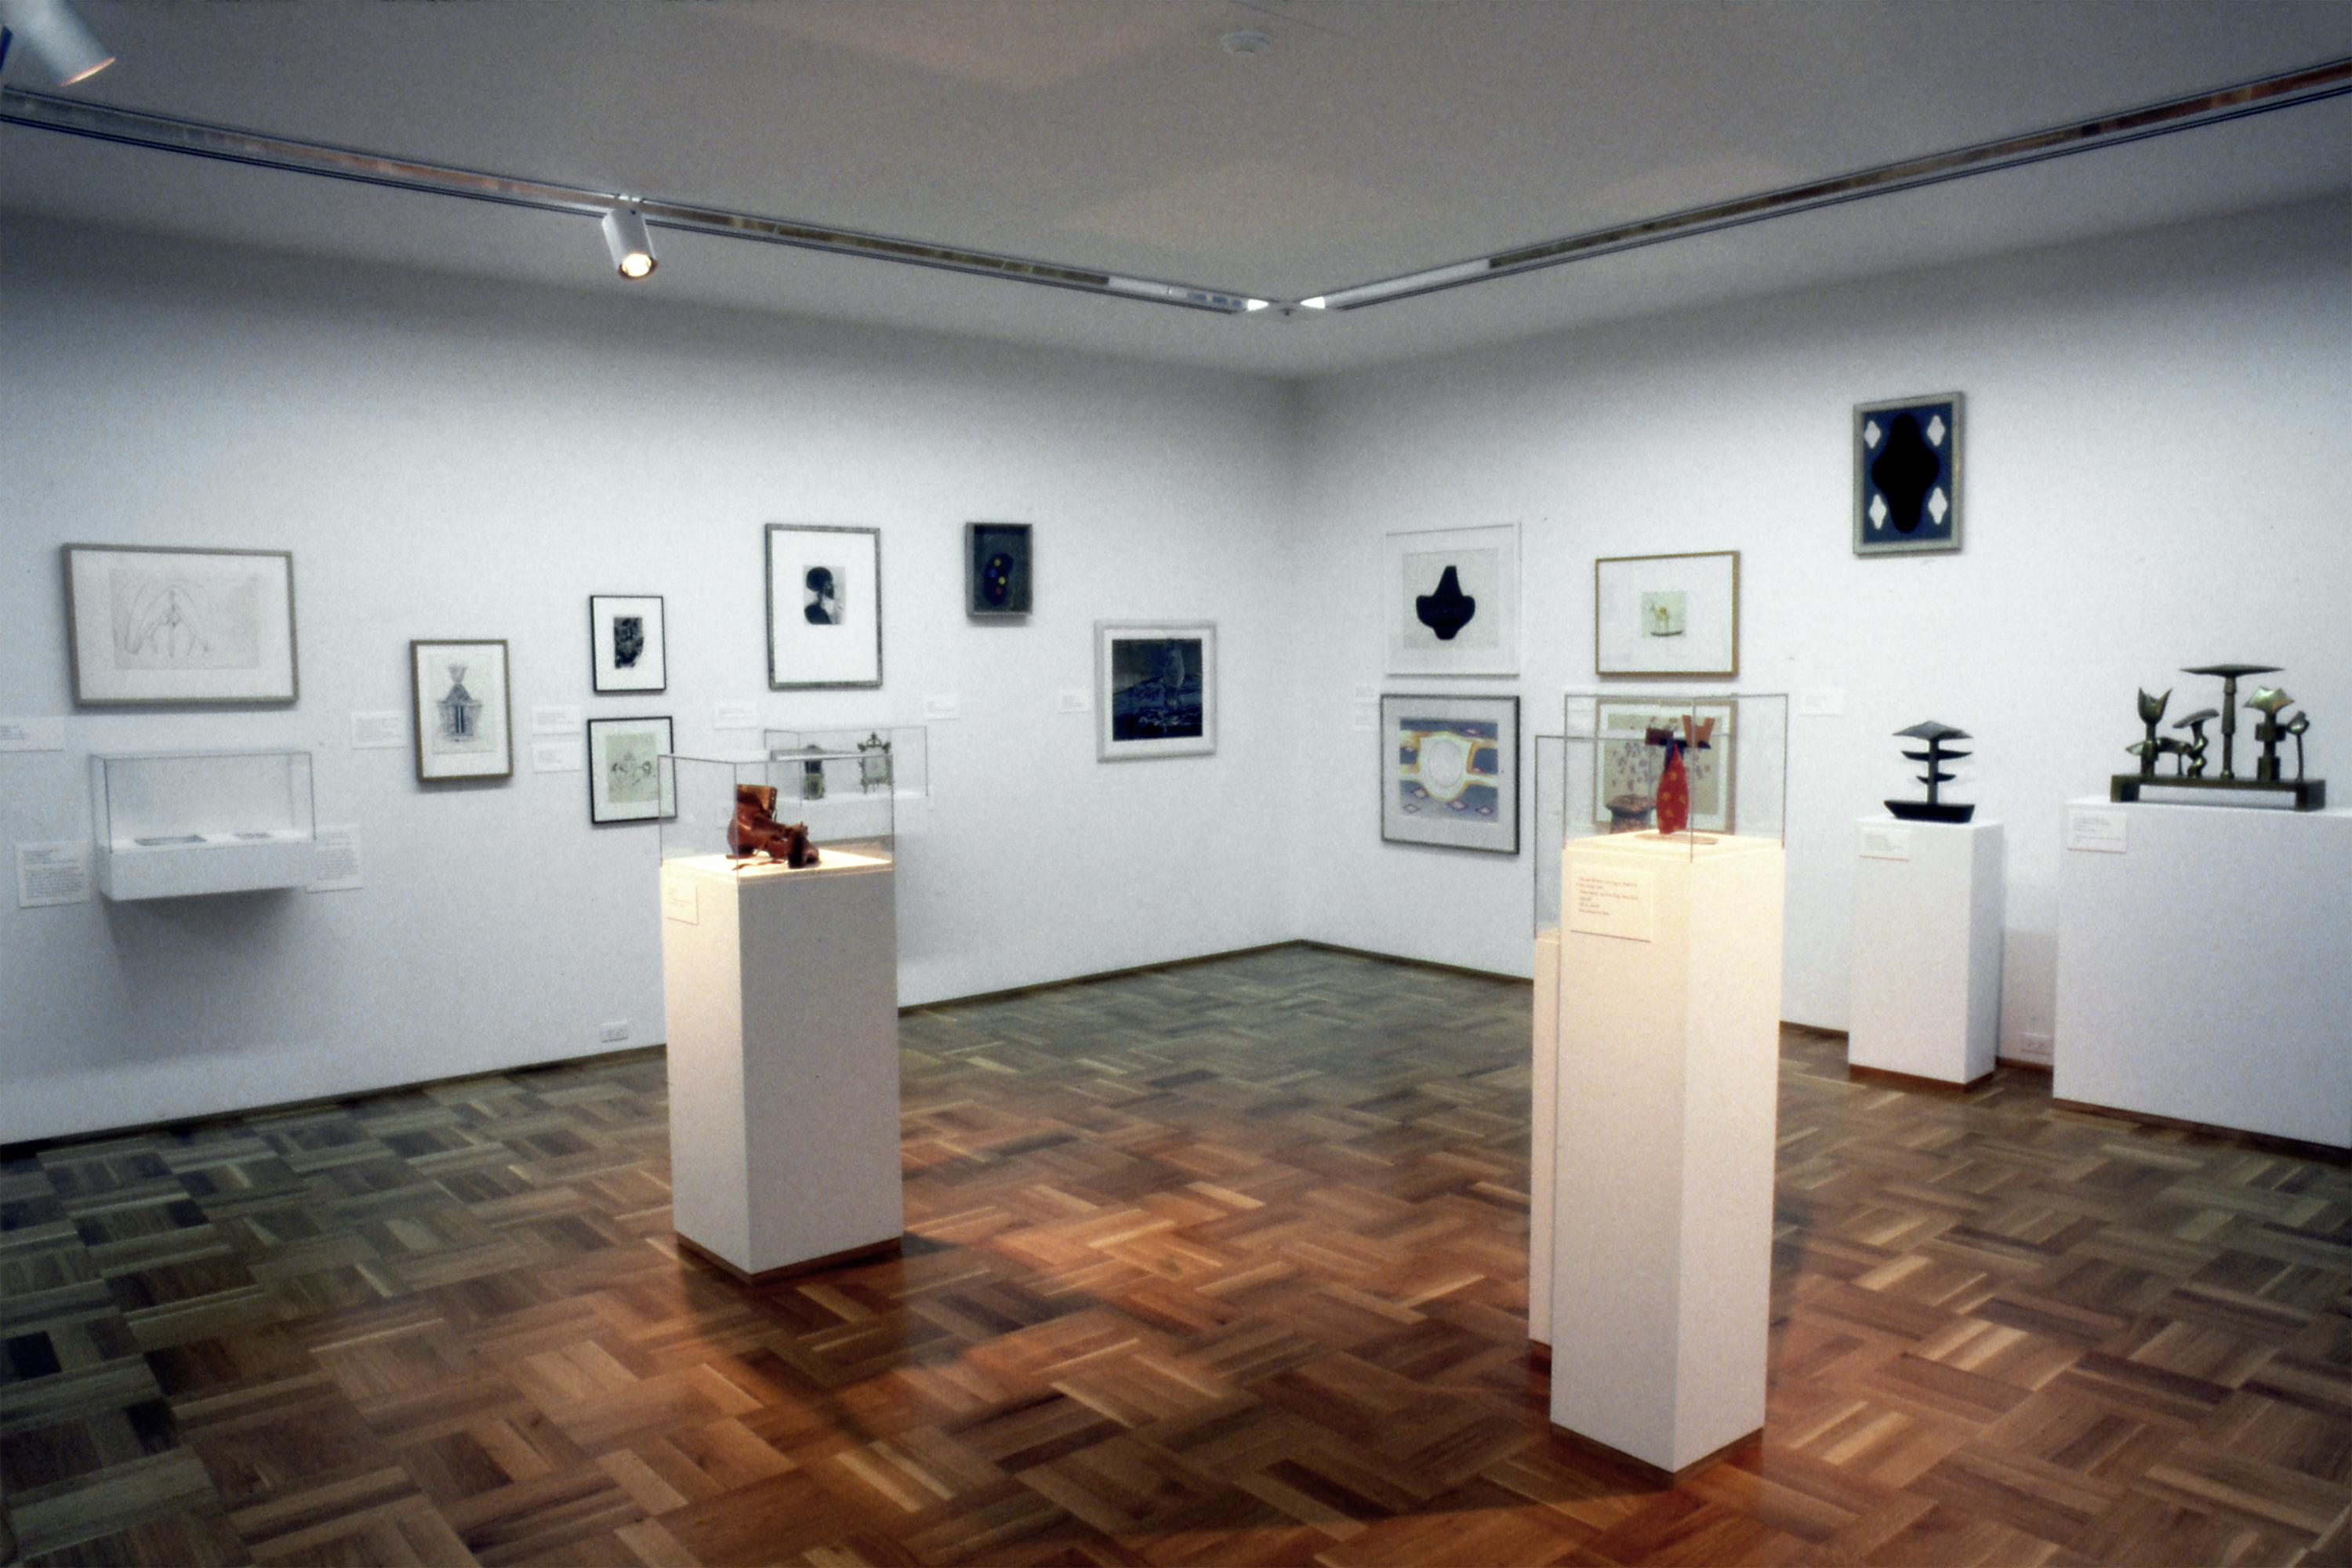 Gallery shot of sculptural artworks on pedestals and framed prints installed in white walled gallery with wooden floors.